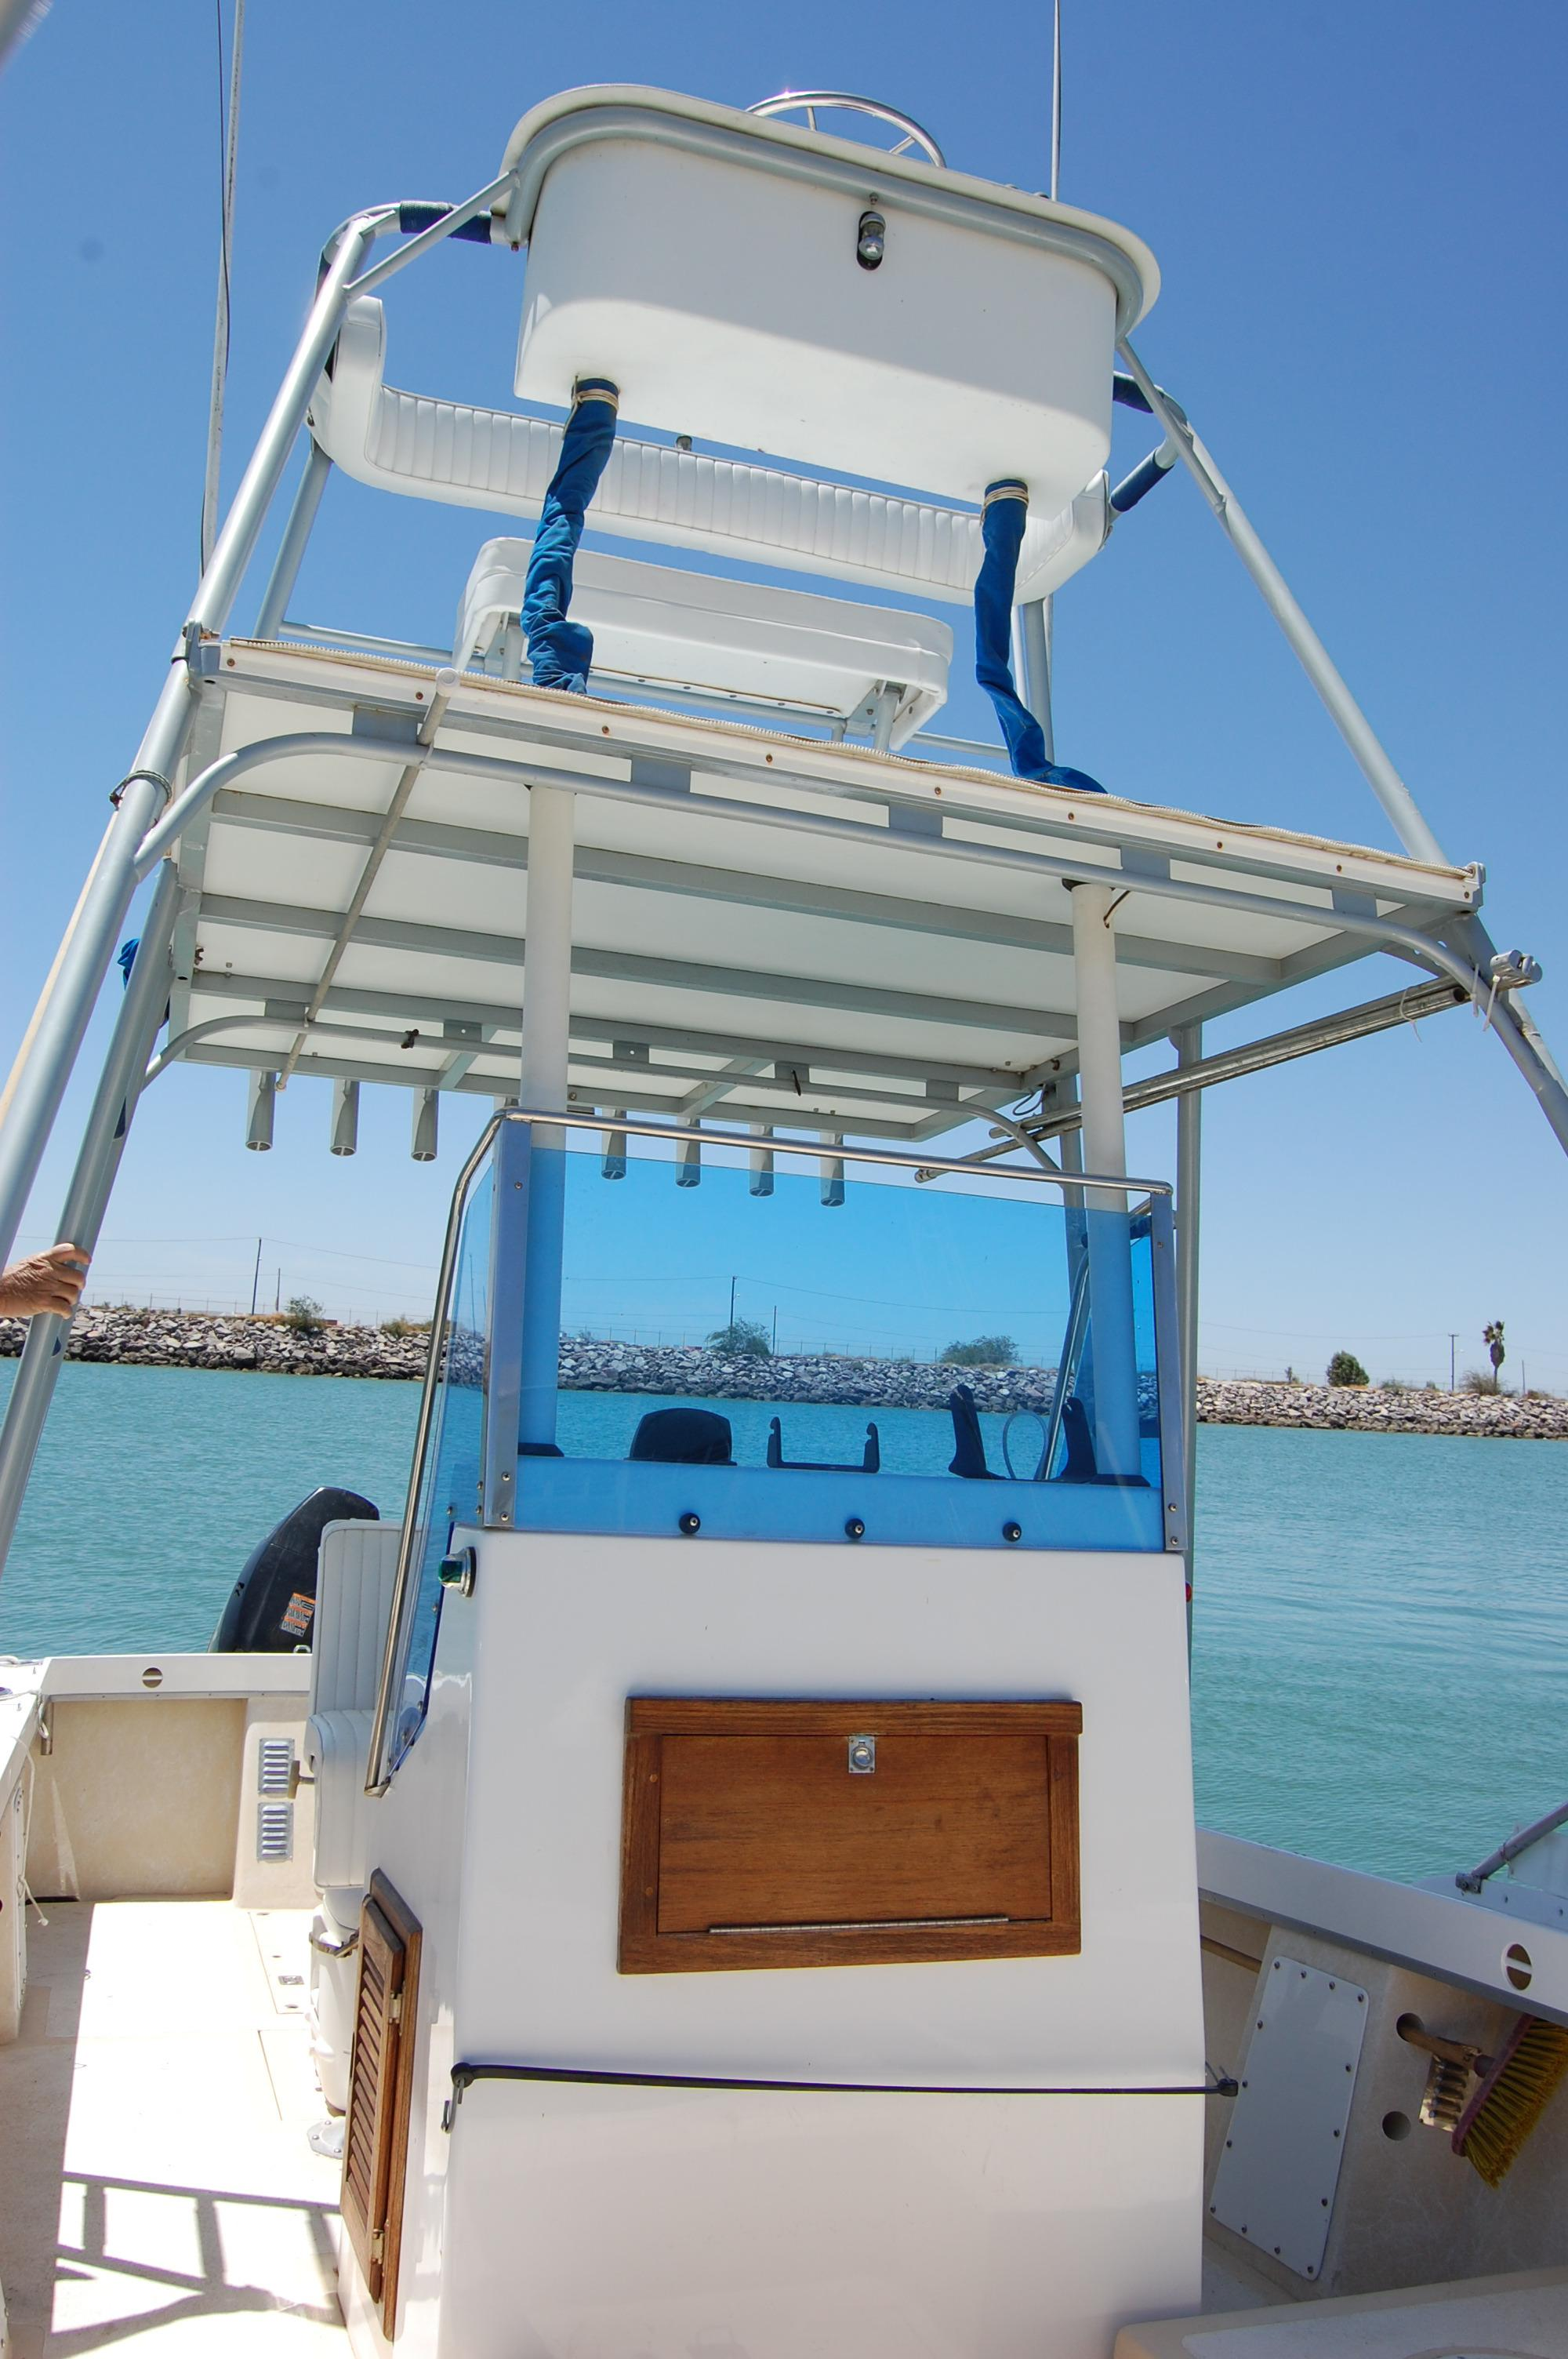 24' Hull Line Center Console Sportfisher+Seating at lower station